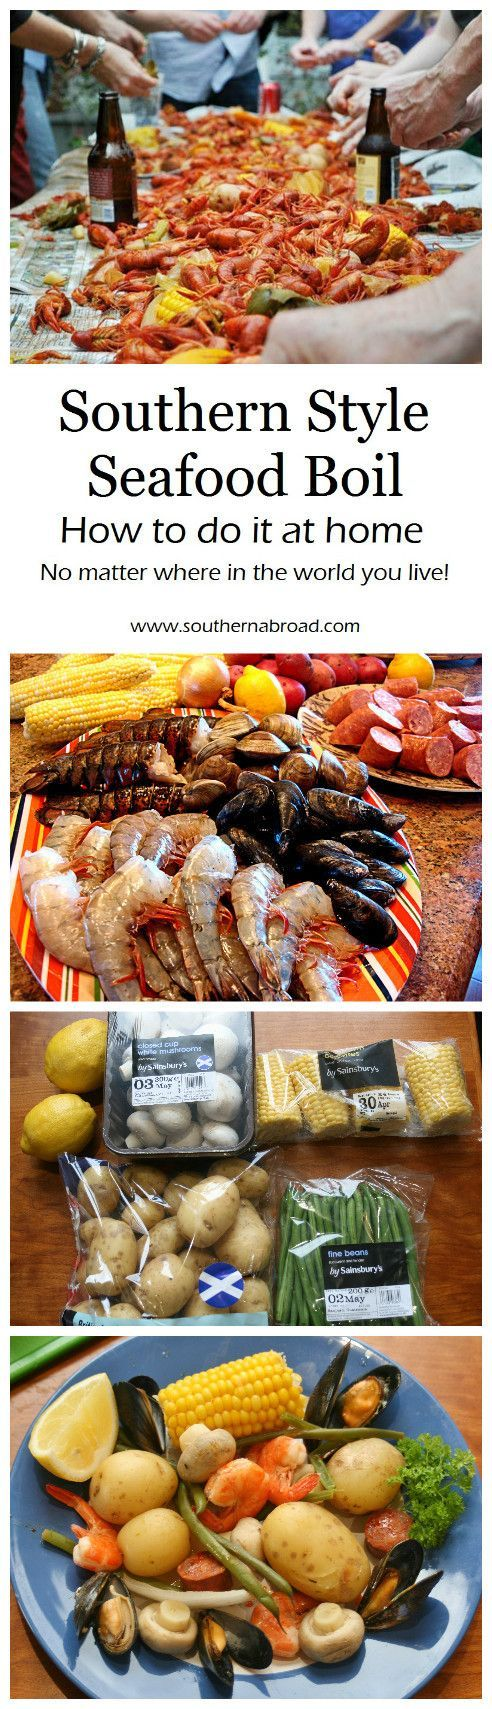 Southern Style Seafood Boil, crawfish boil, crab boil, crawfish recipe, seafood recipe, shrimp, mussels, party food